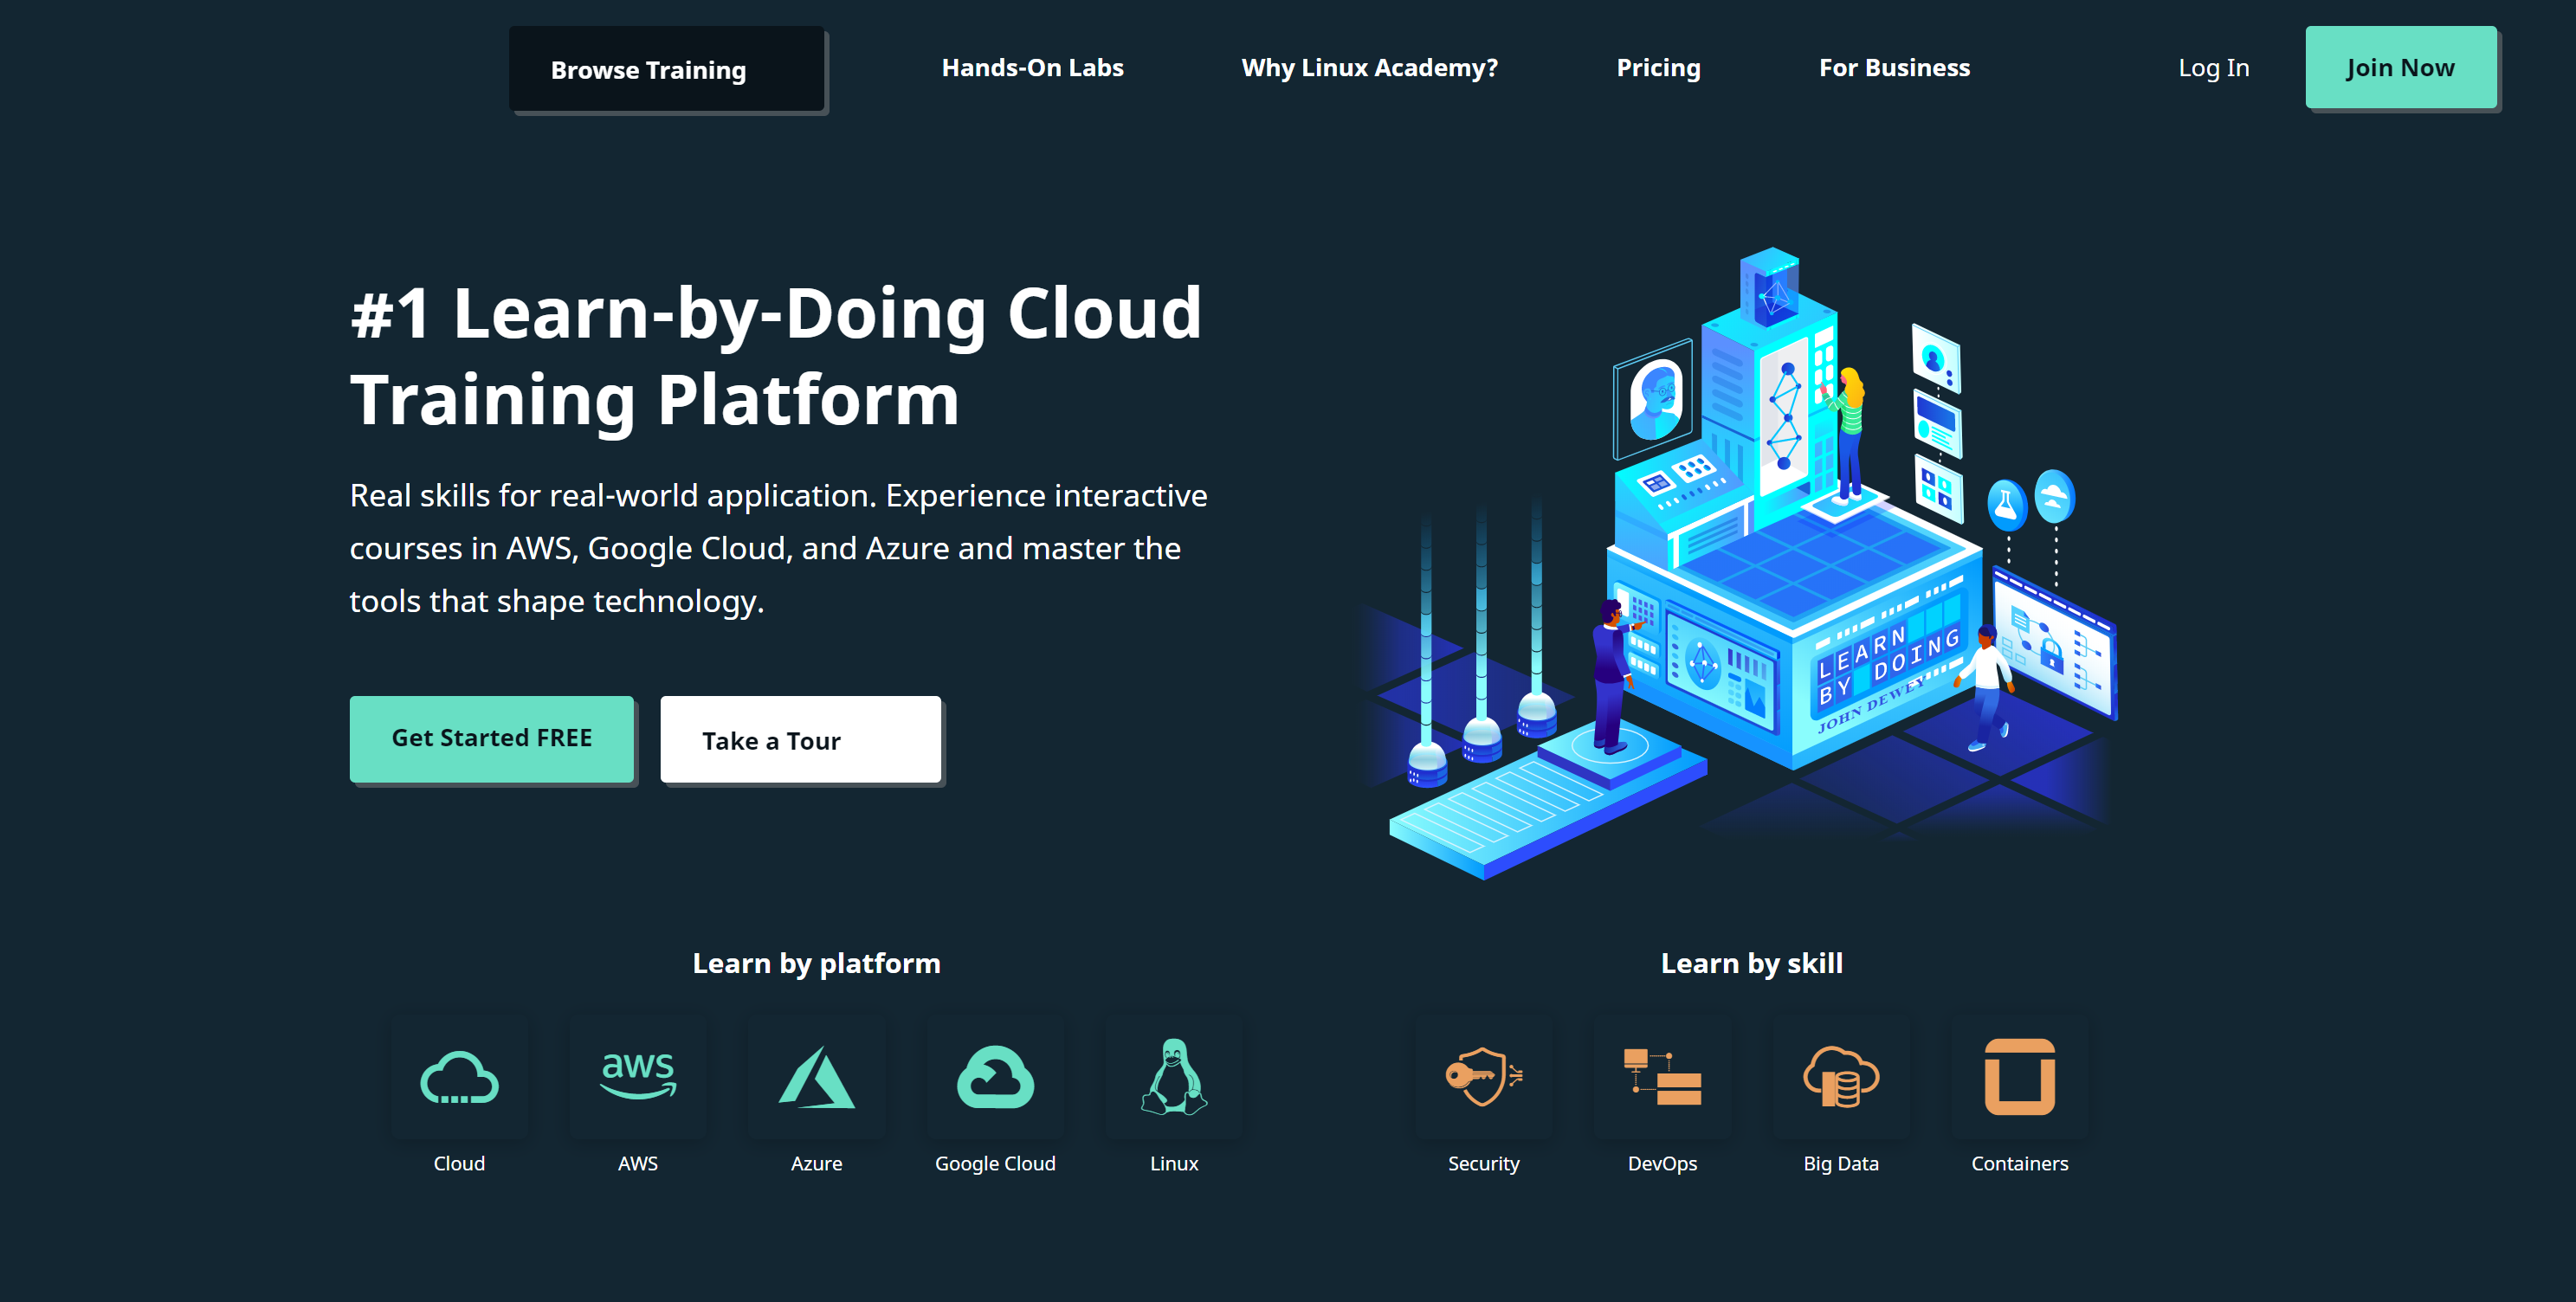 _1 Learn-by-Doing Online Cloud Training Platform – Linux Academy